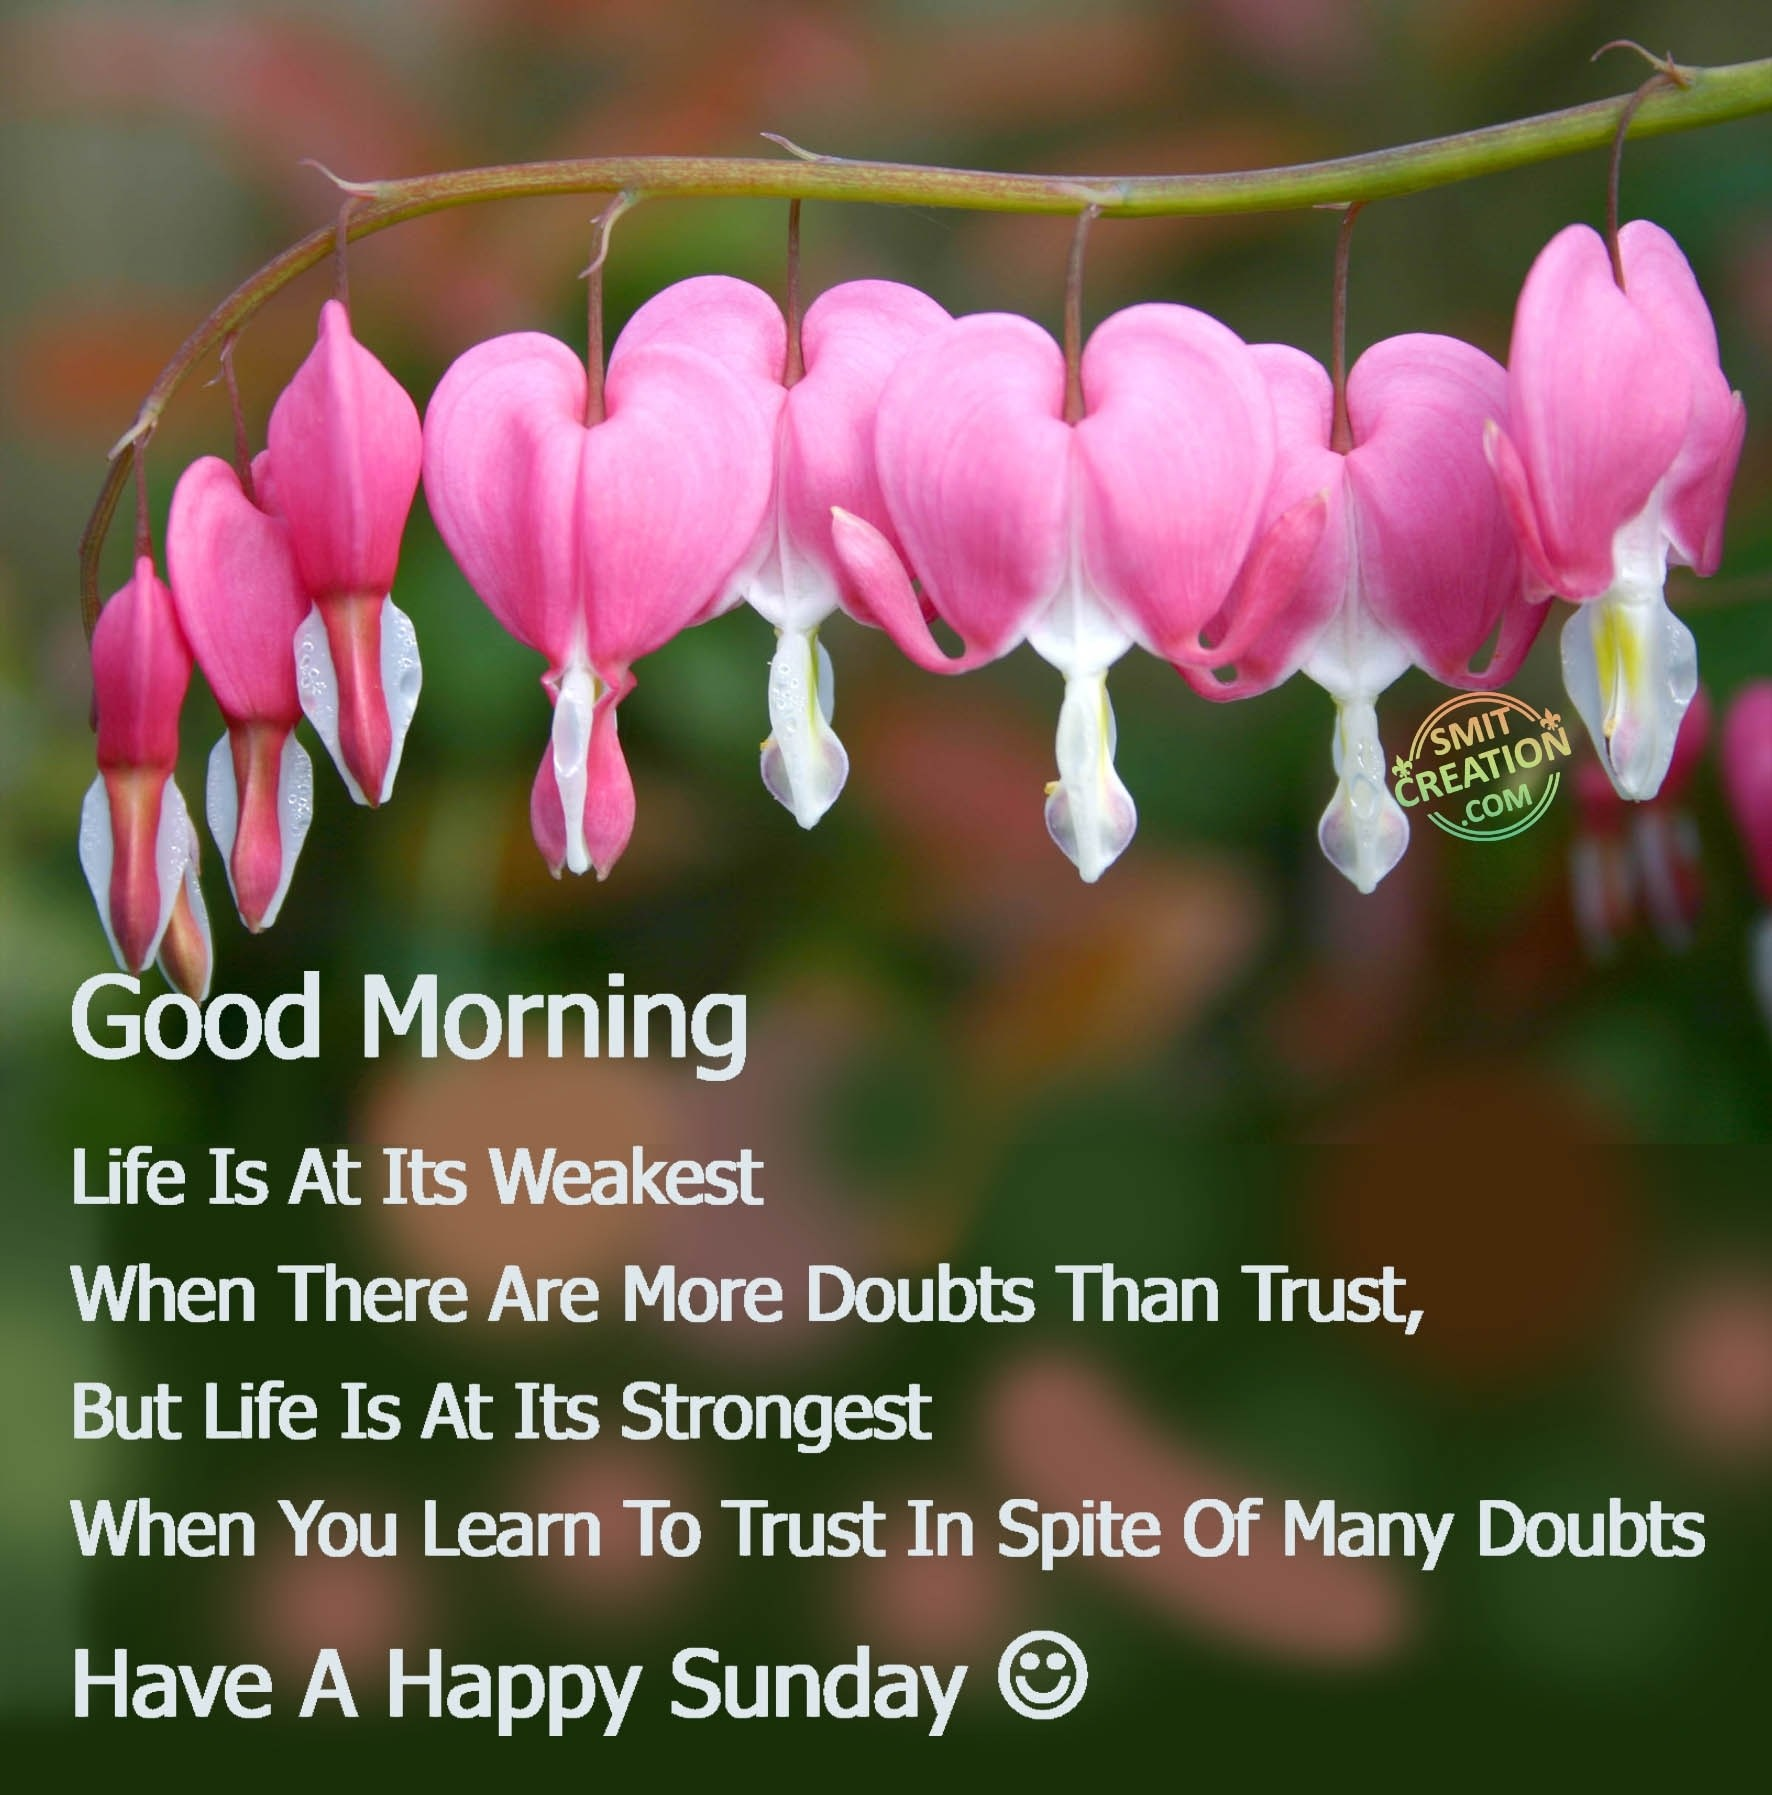 Good Morning Have A Happy Sunday Smitcreationcom